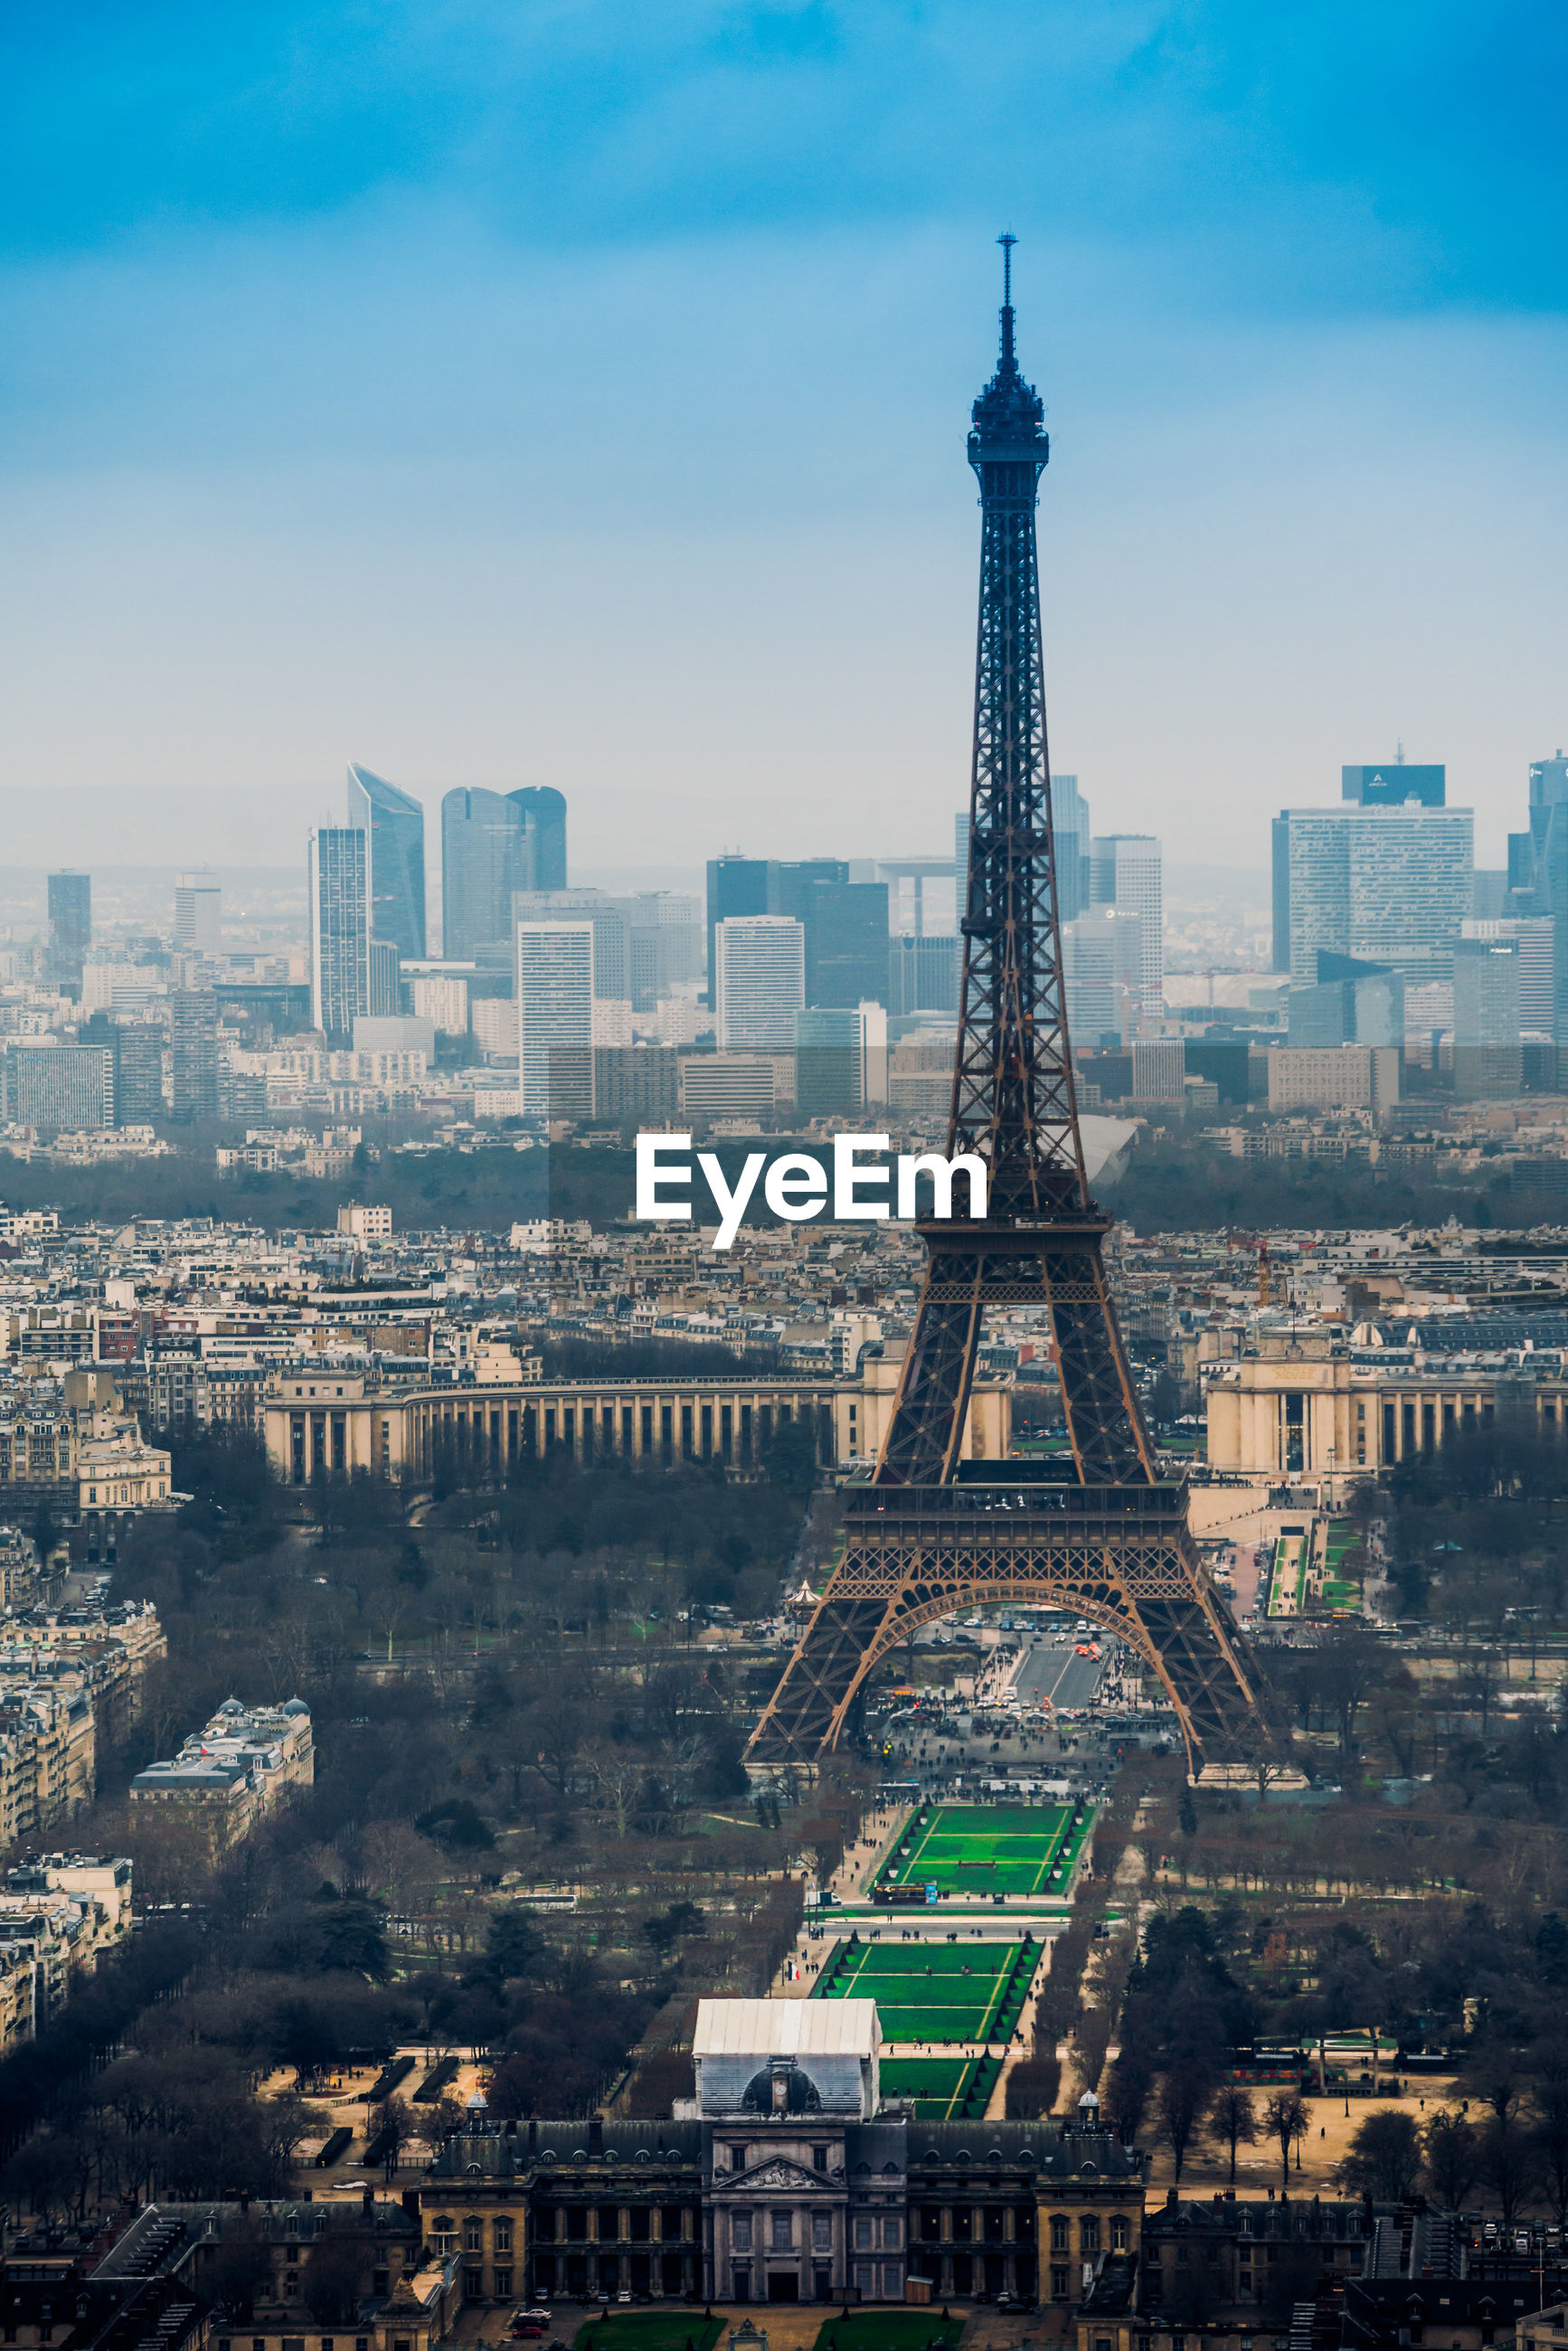 Eiffel tower amidst buildings in city